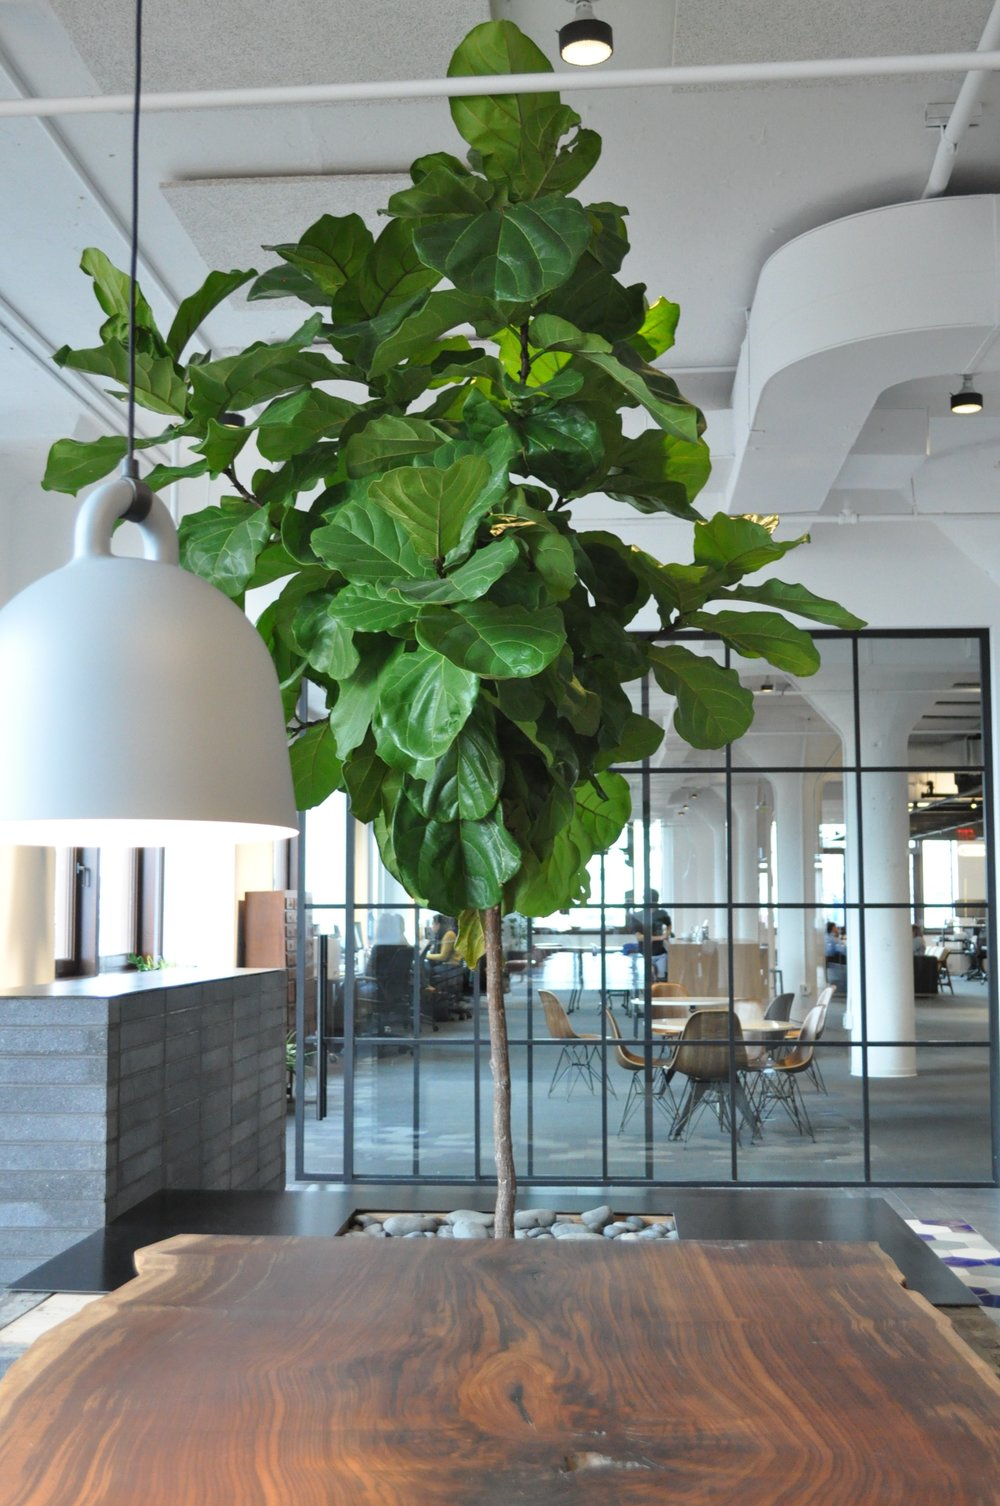 nyc-indoor-tree-interior-landscape.jpg